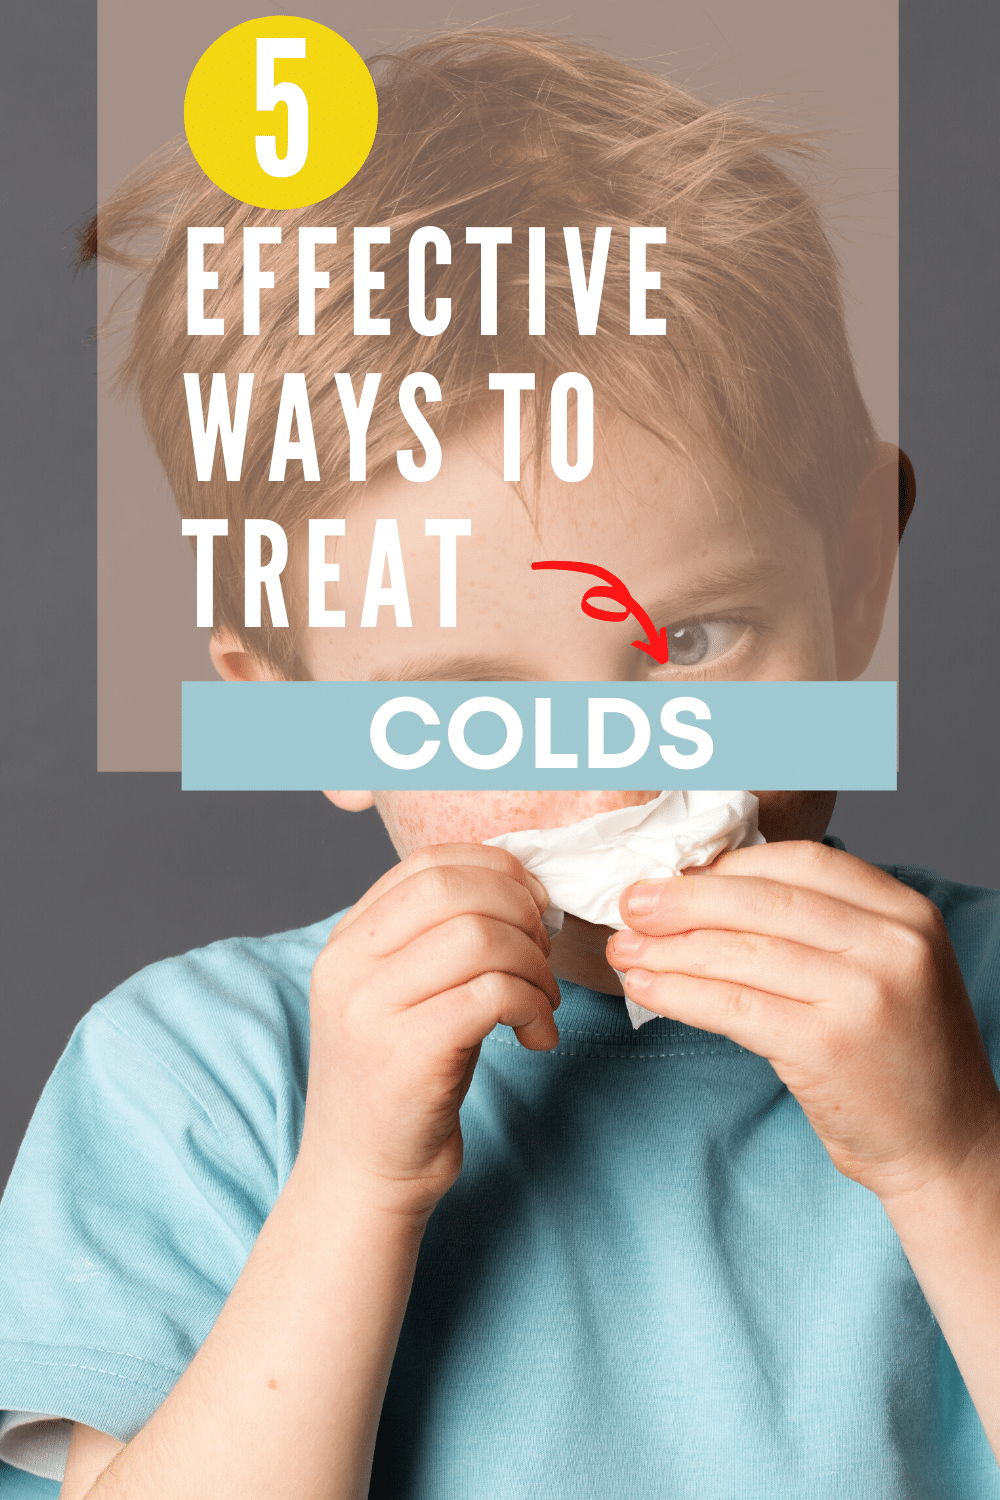 a boy holding a tissue to his nose with text overlay reading 5 Effective Ways To Treat Colds